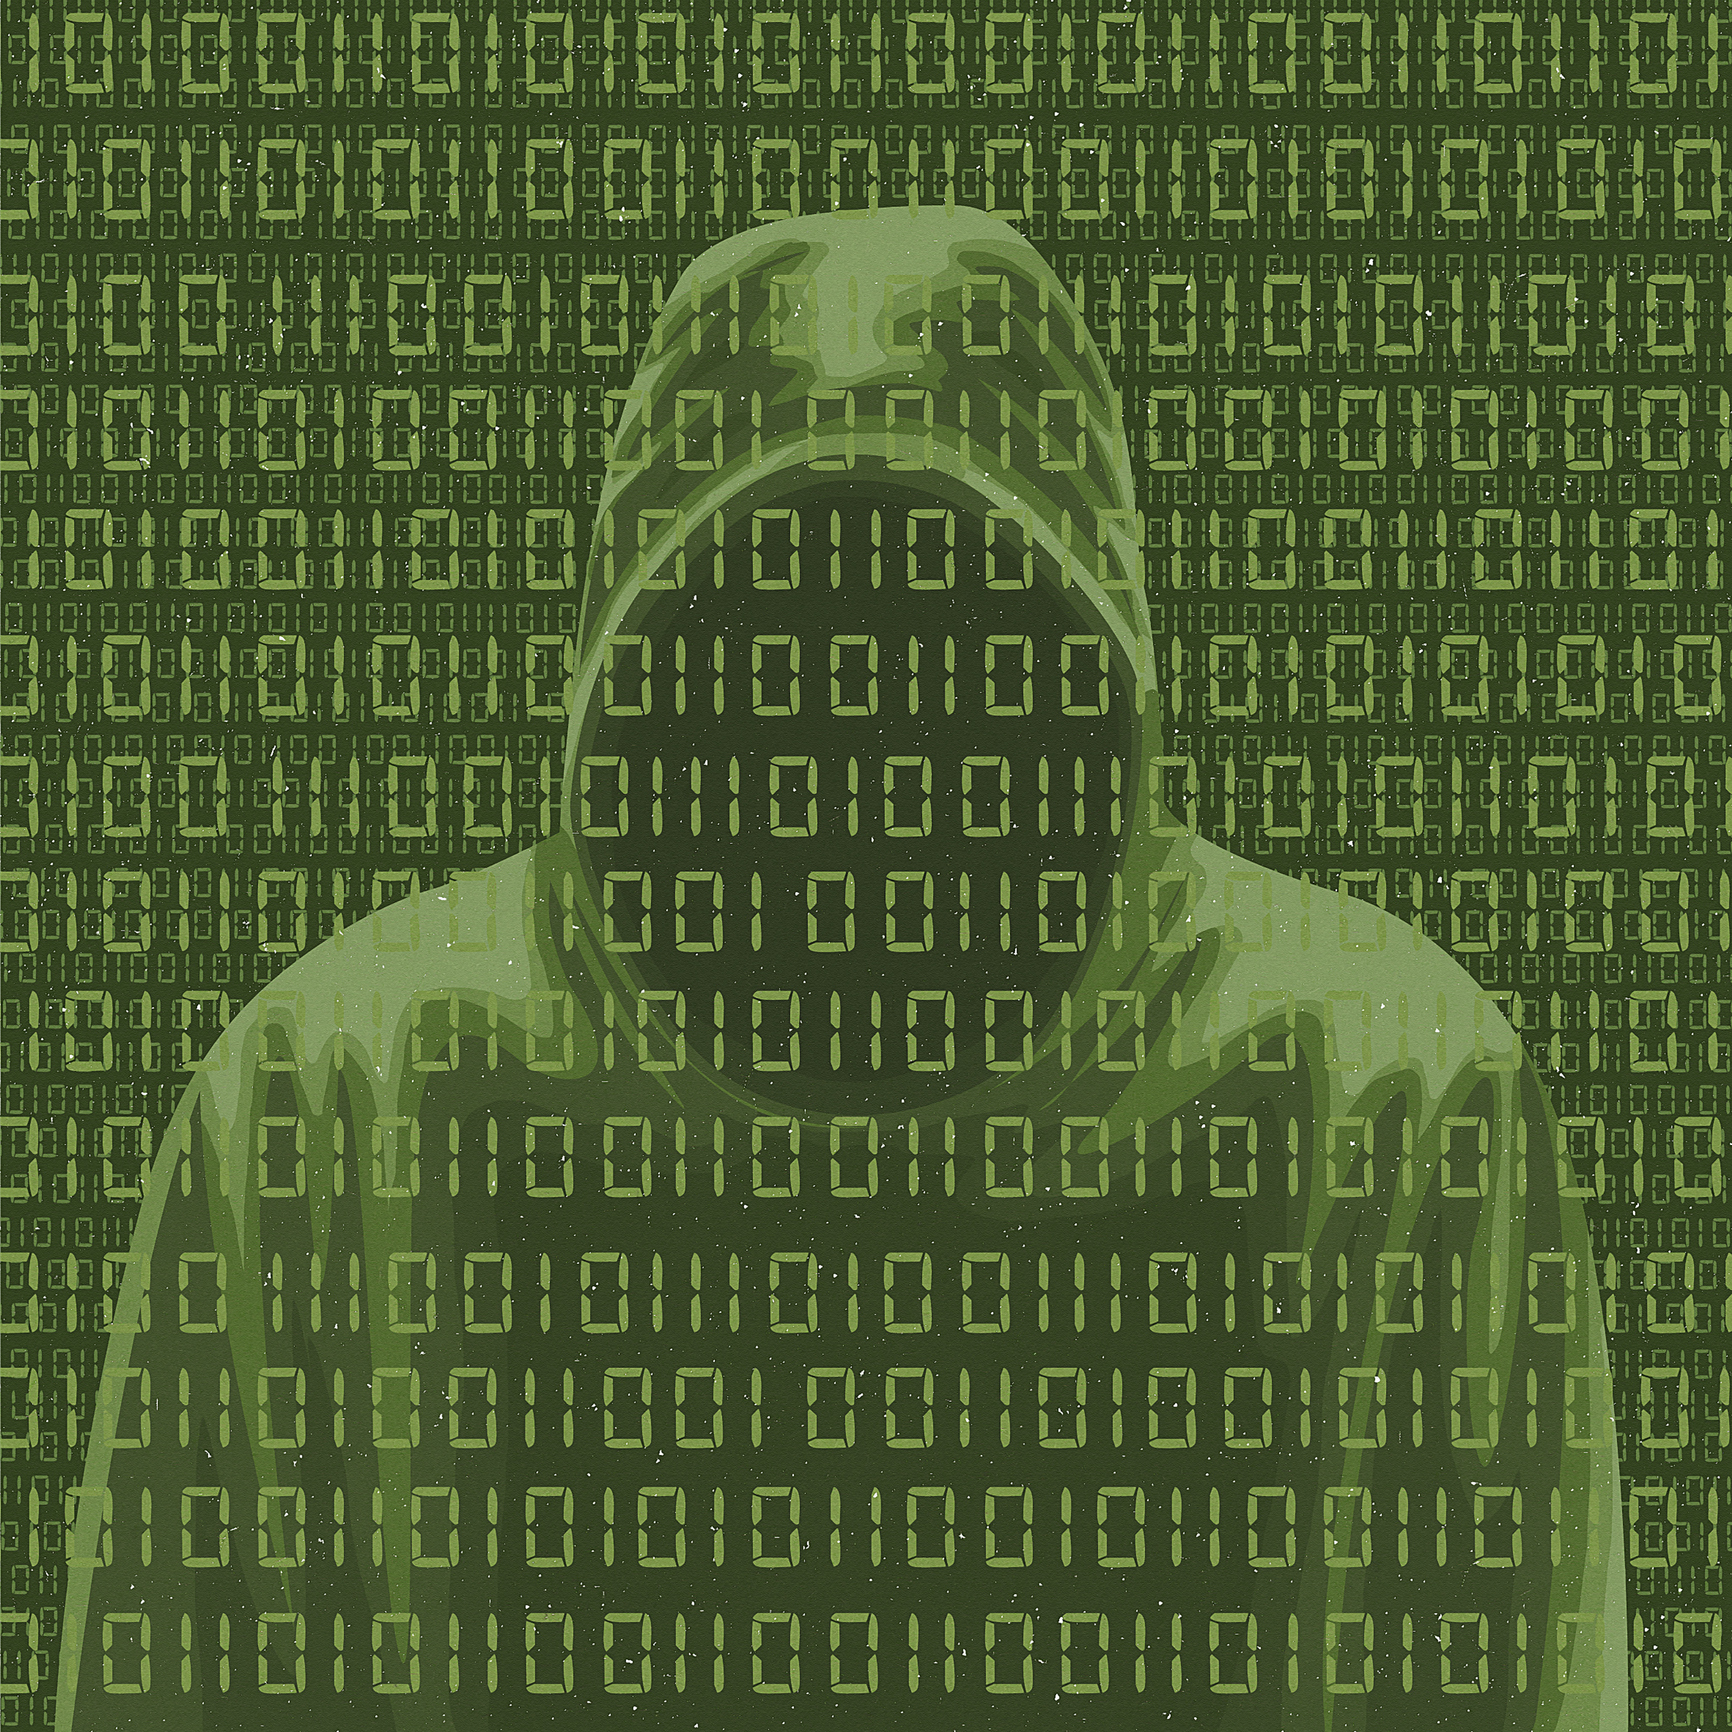 Faceless man in hoodie and computer binary code